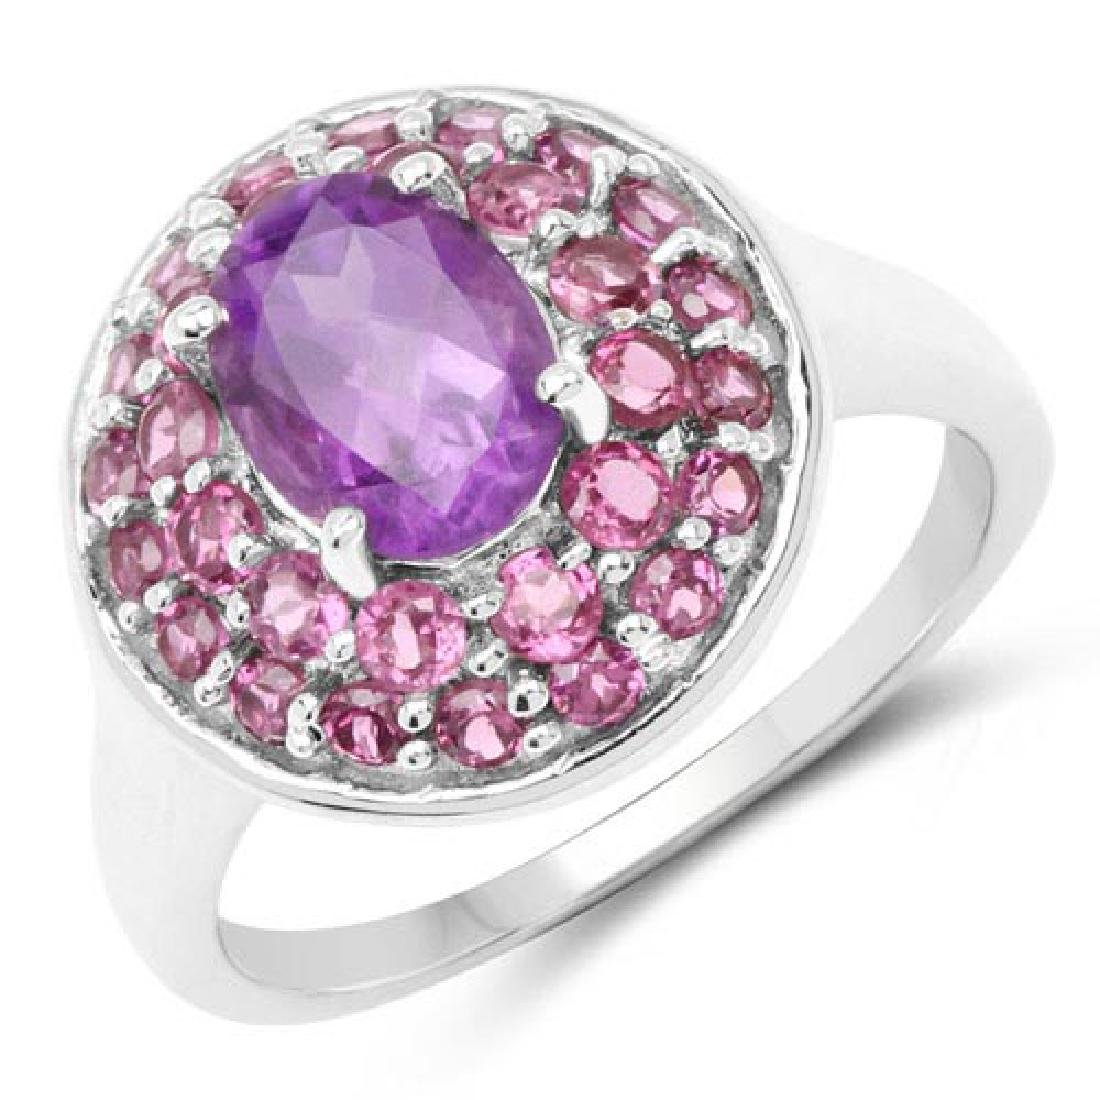 2.48 Carat Genuine Amethyst and Rhodolite .925 Sterling